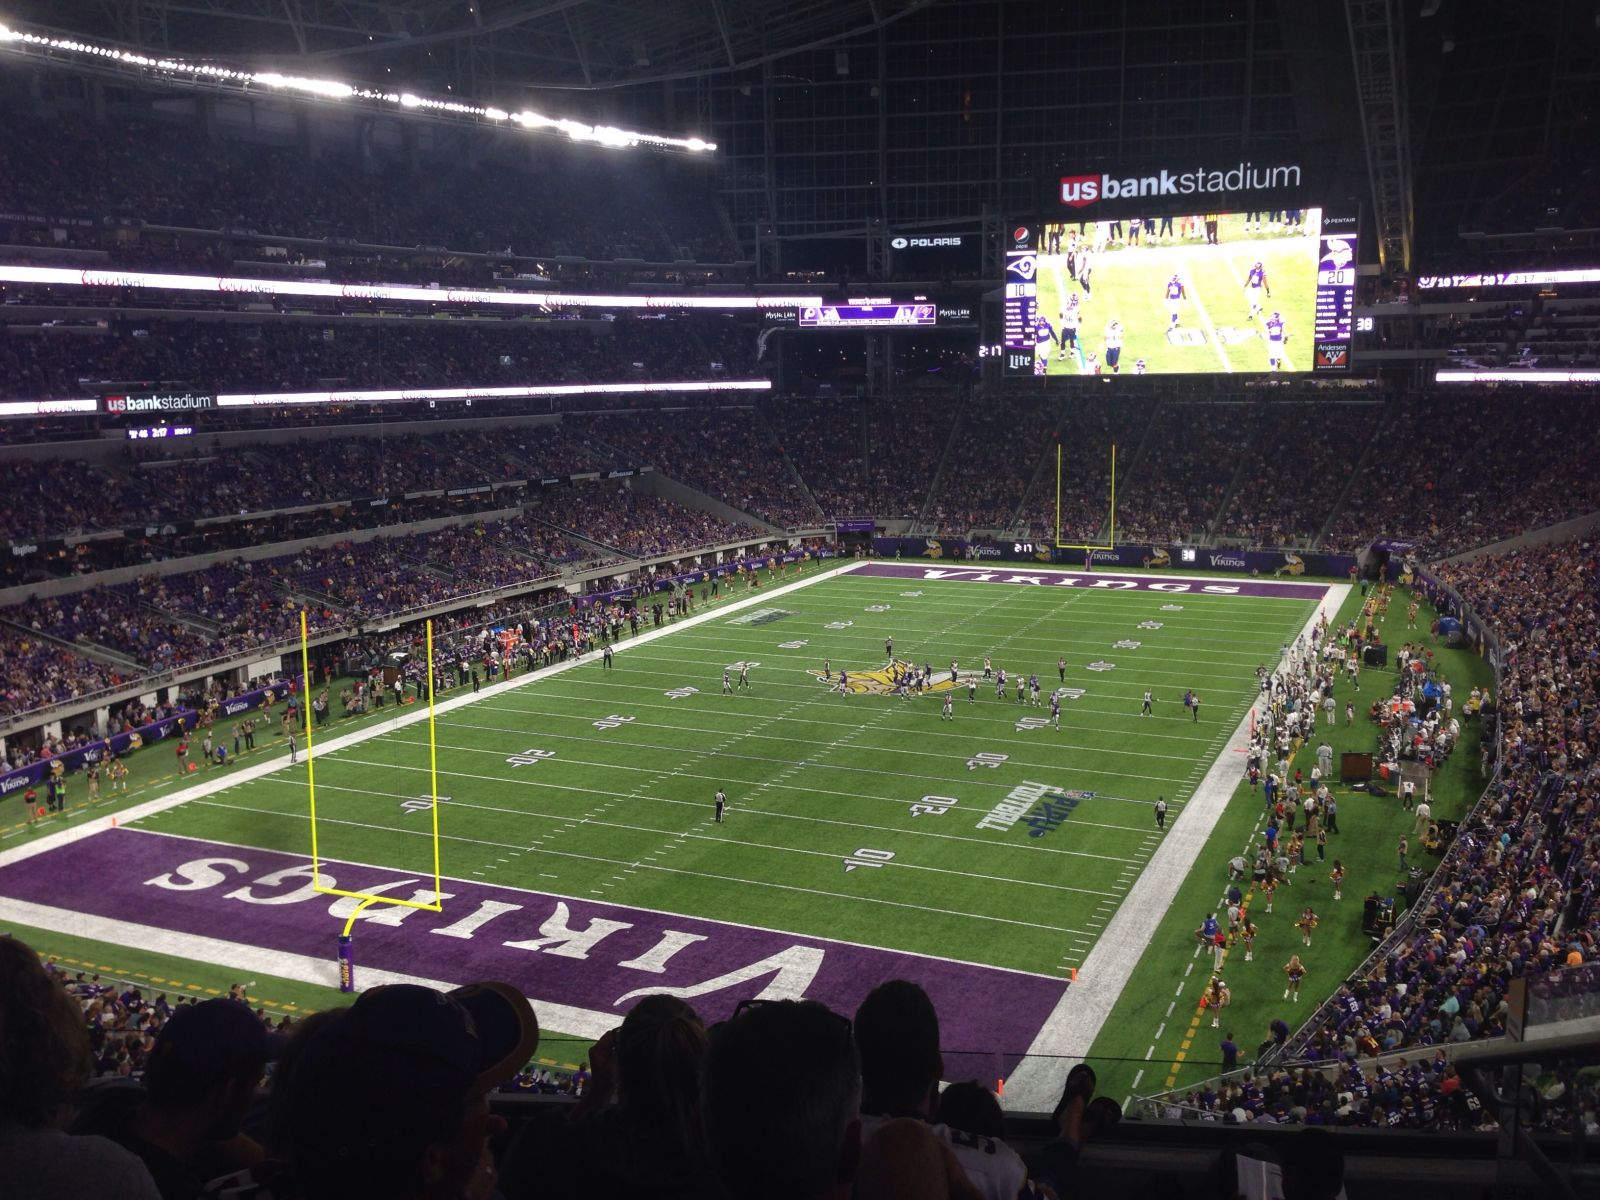 U.S. Bank Stadium : Row 6